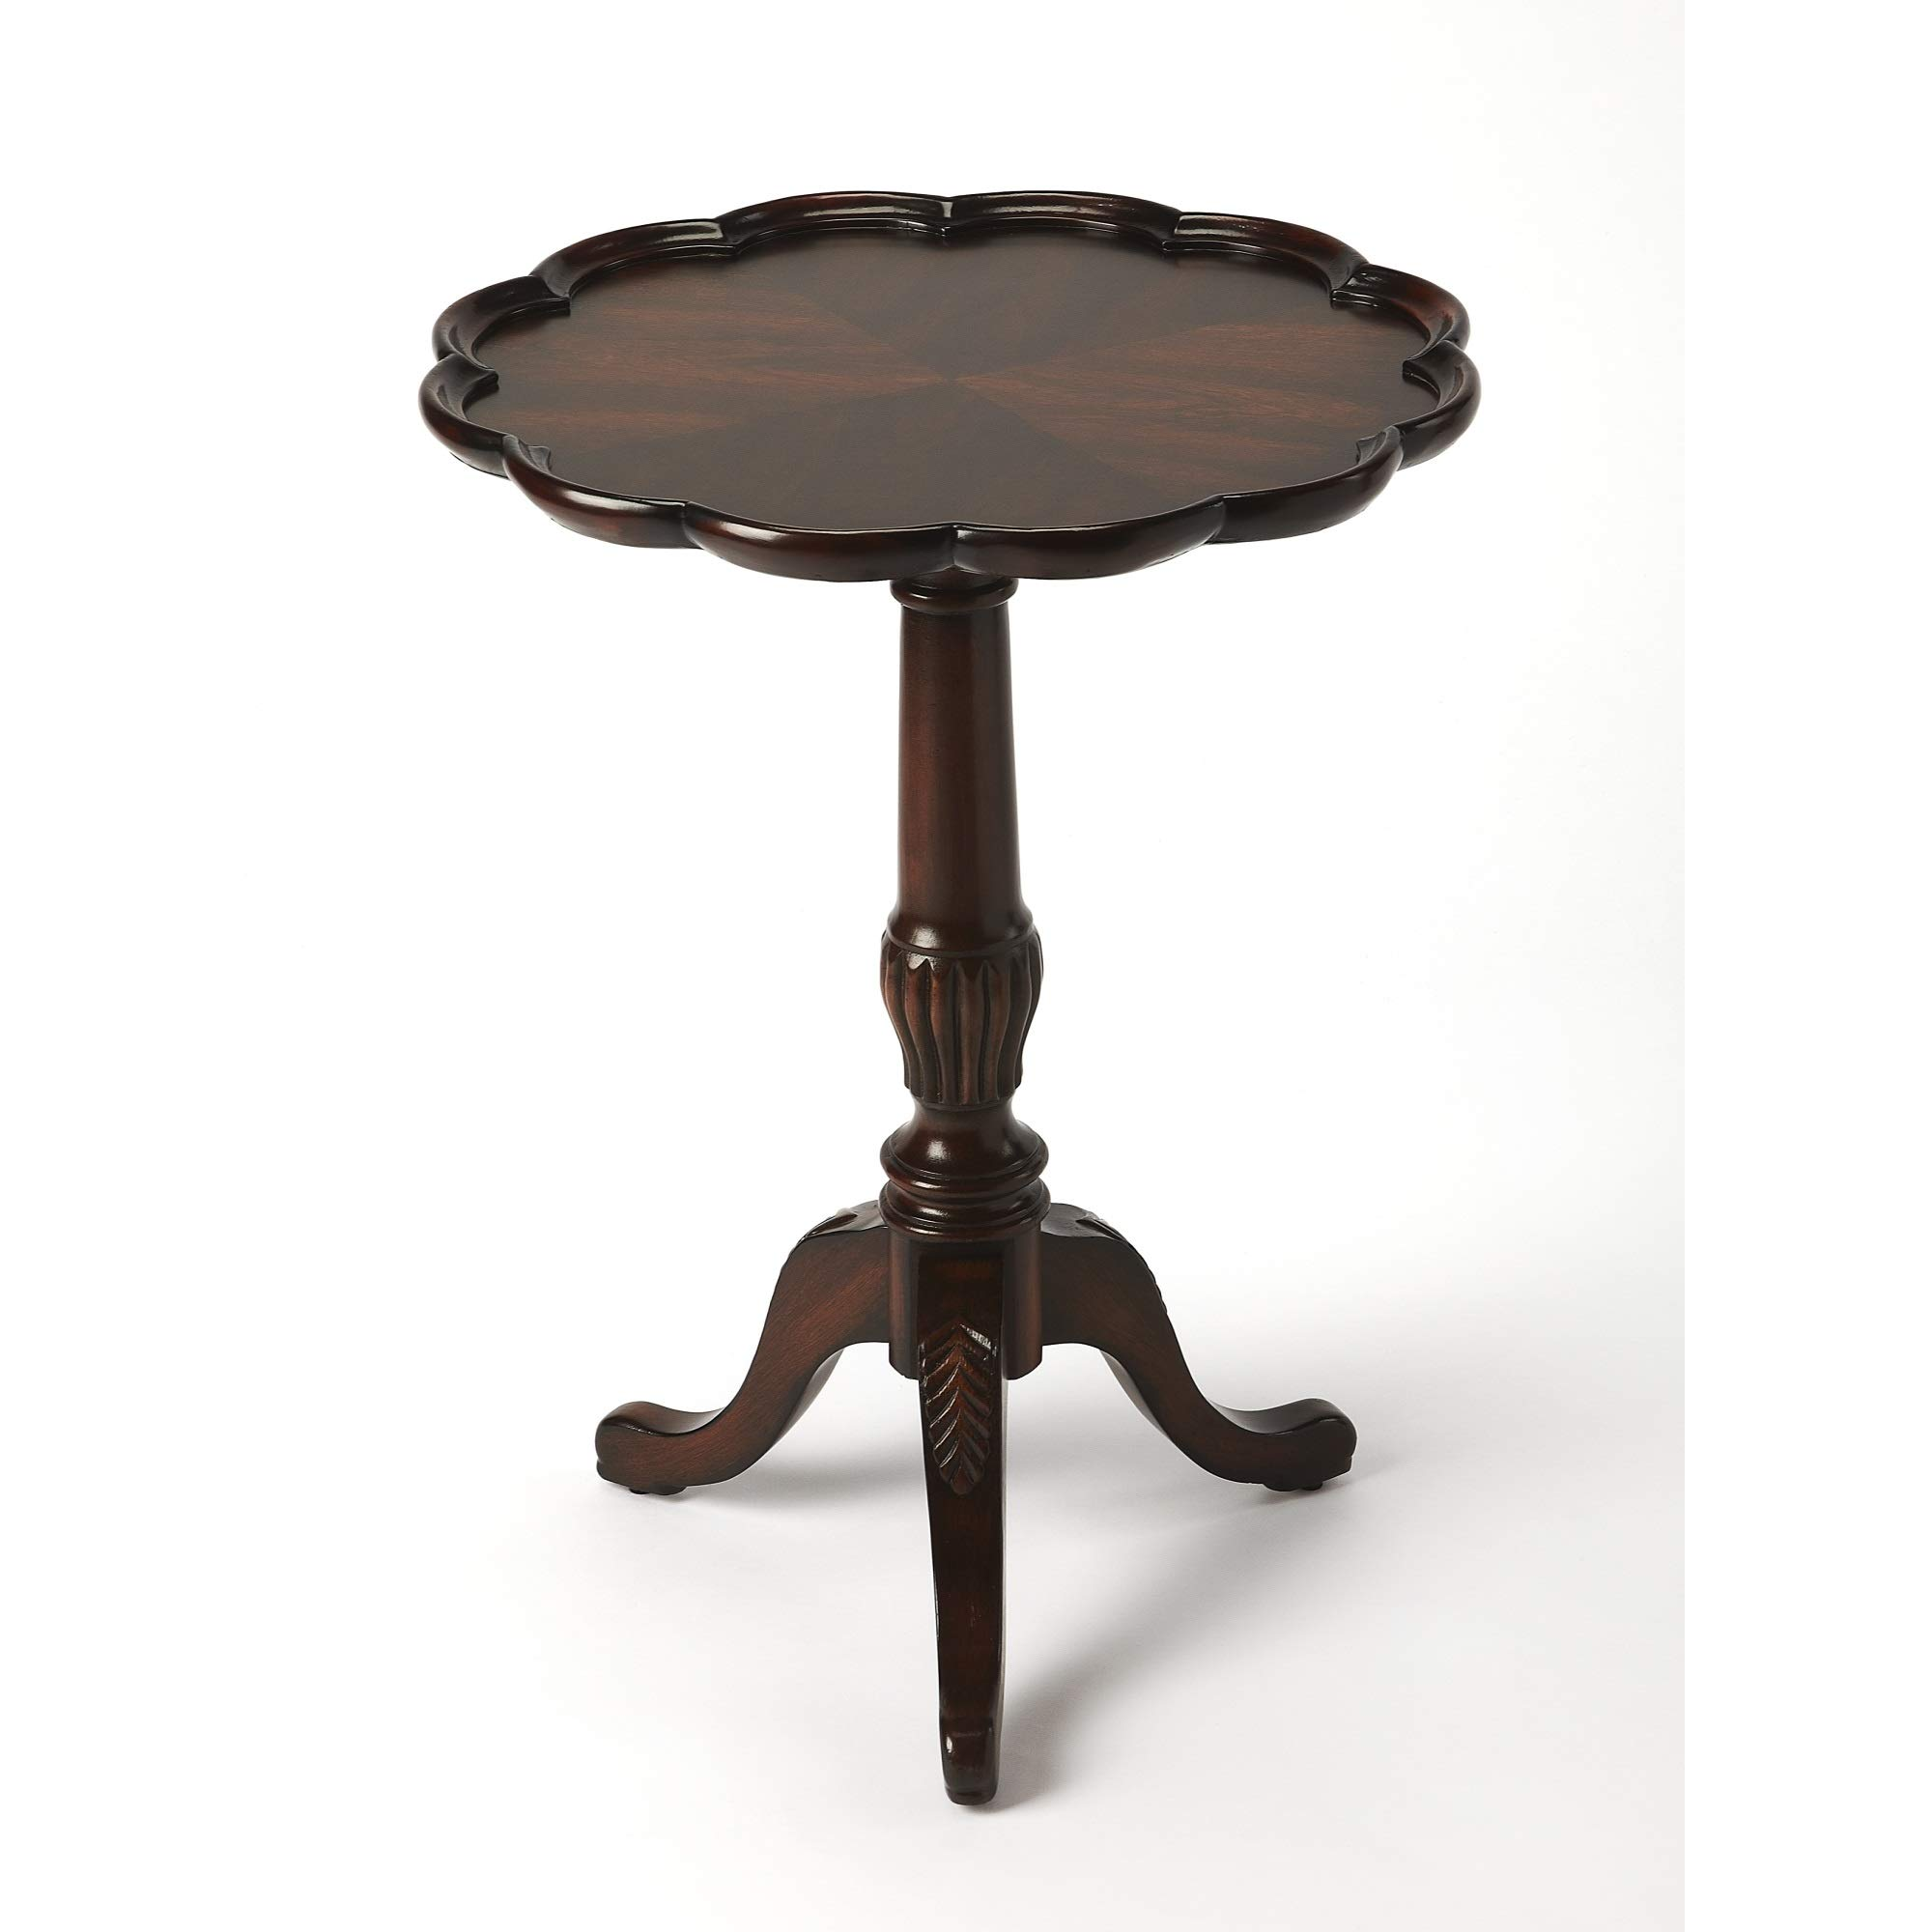 WOYBR PEDESTAL TABLE by WOYBR